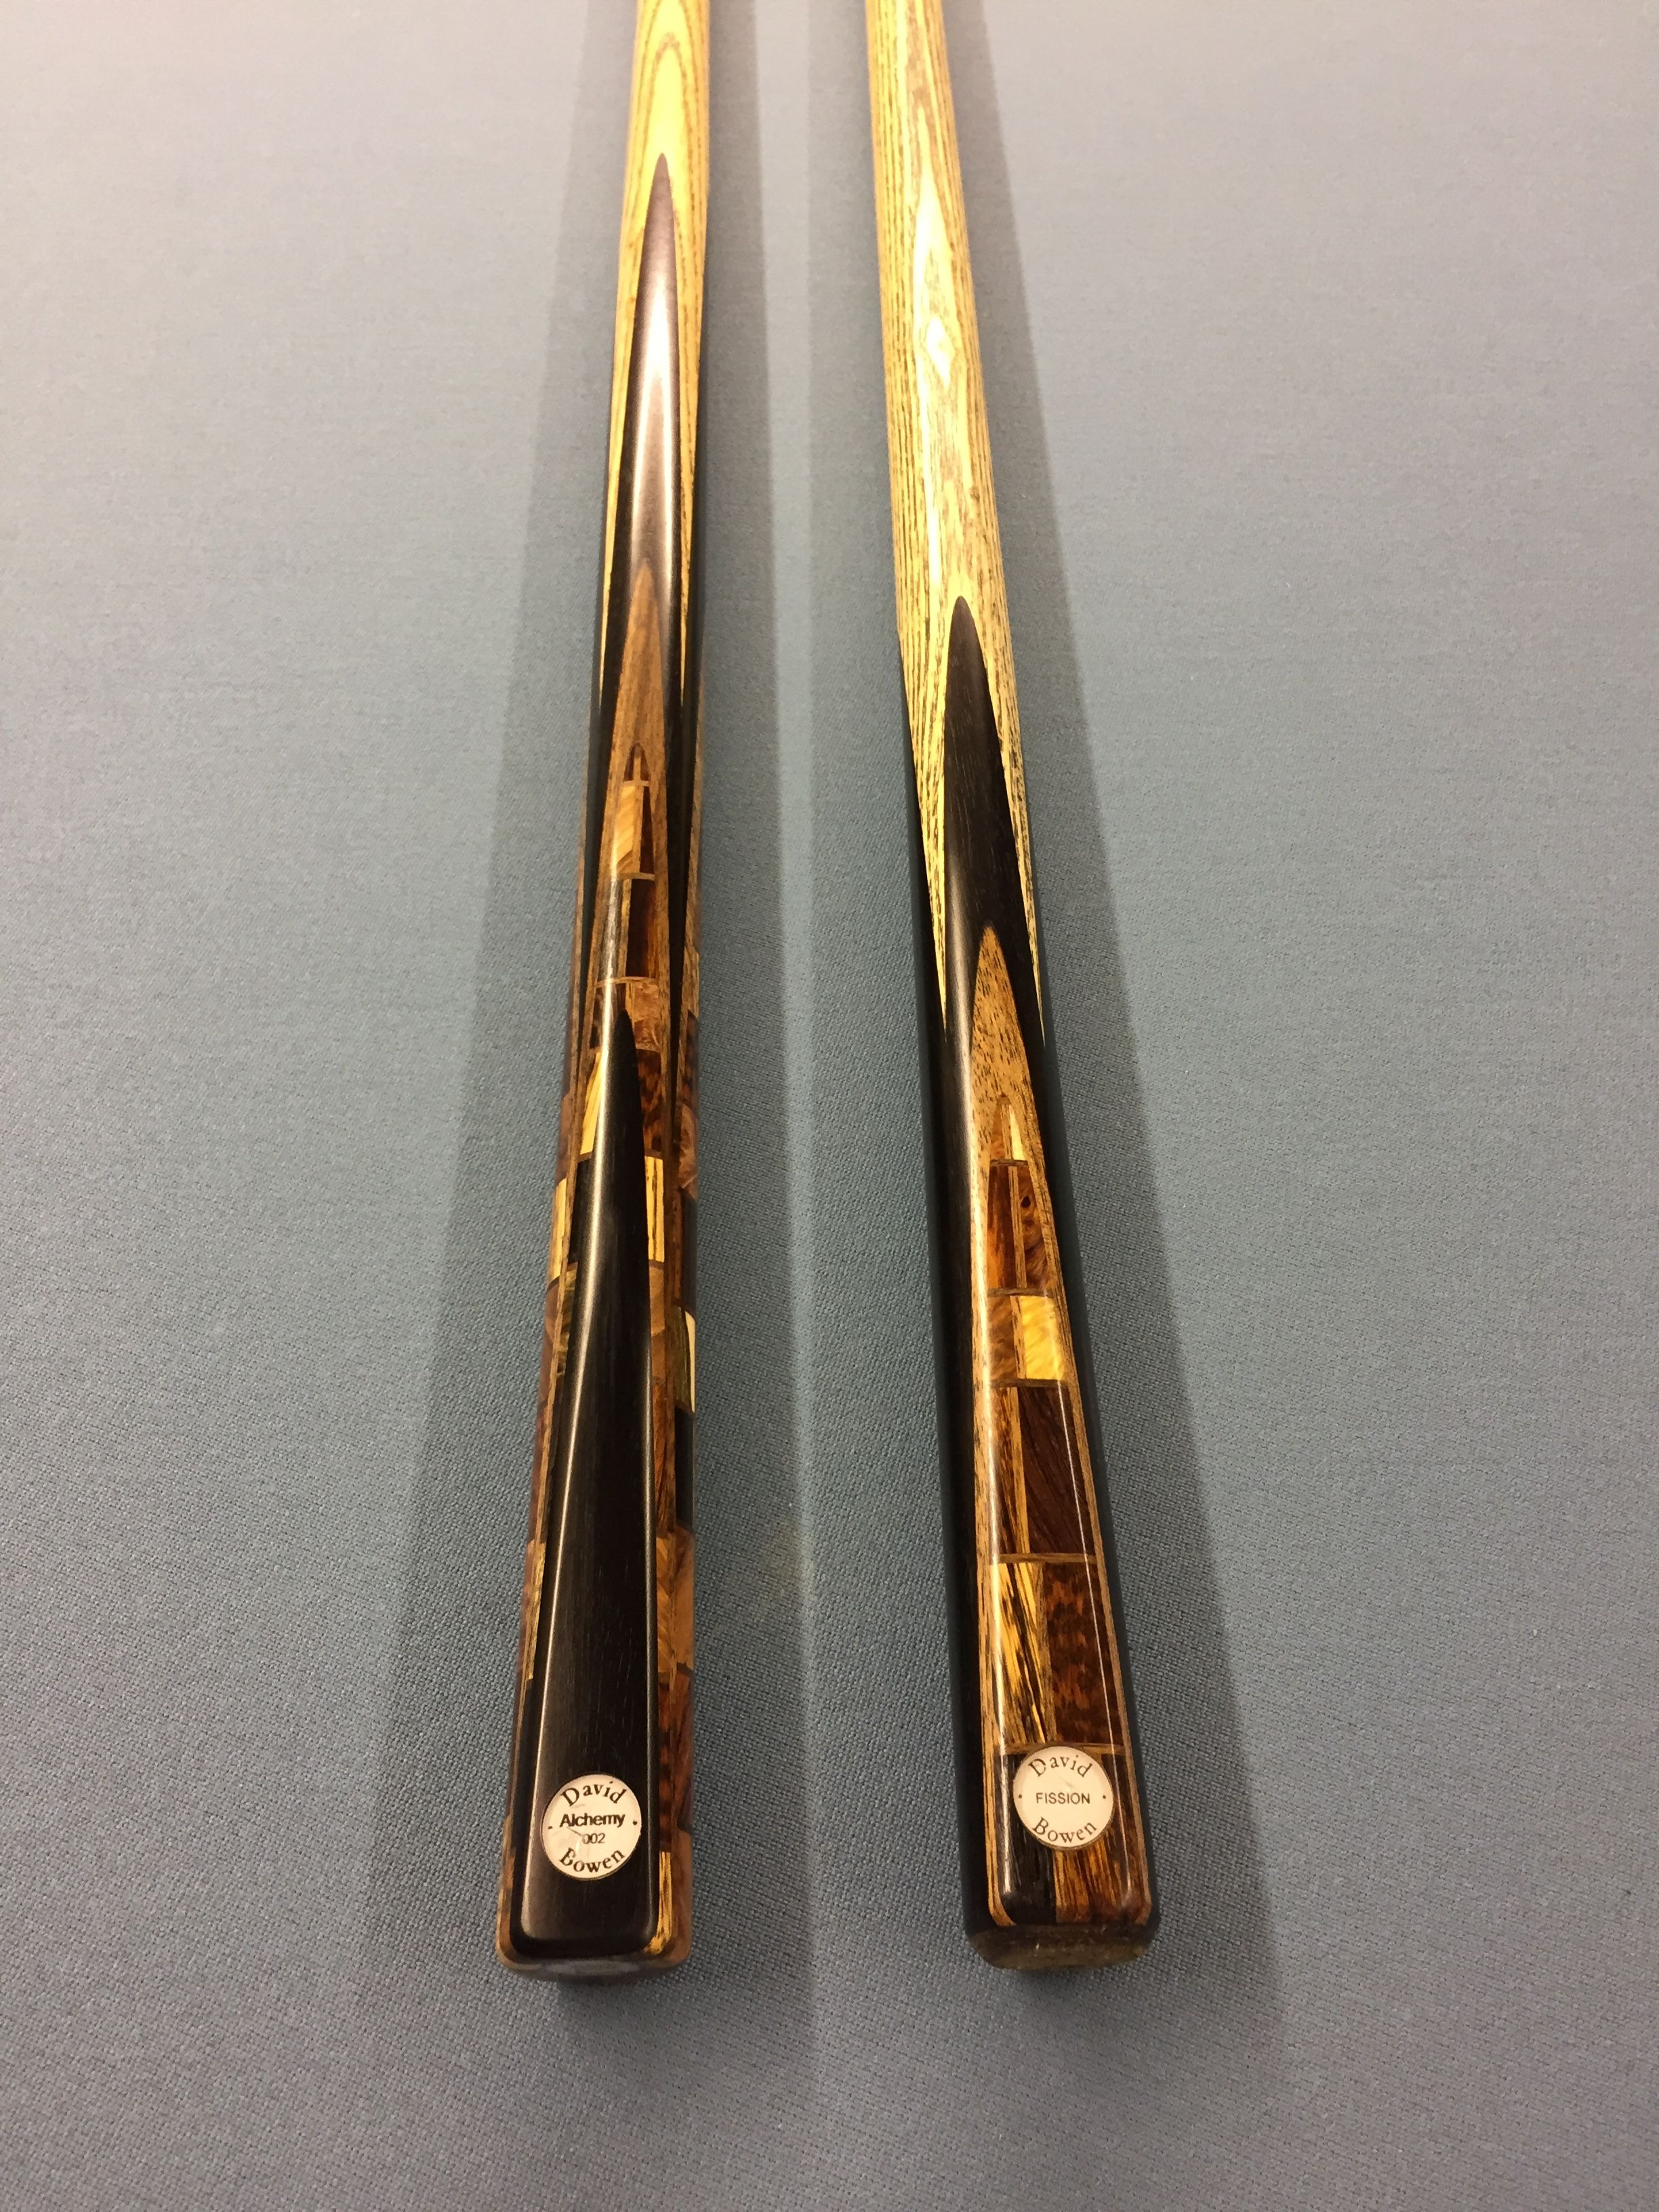 Blockwork Pool Cue And Break Cue David Bowen Alchemy 002